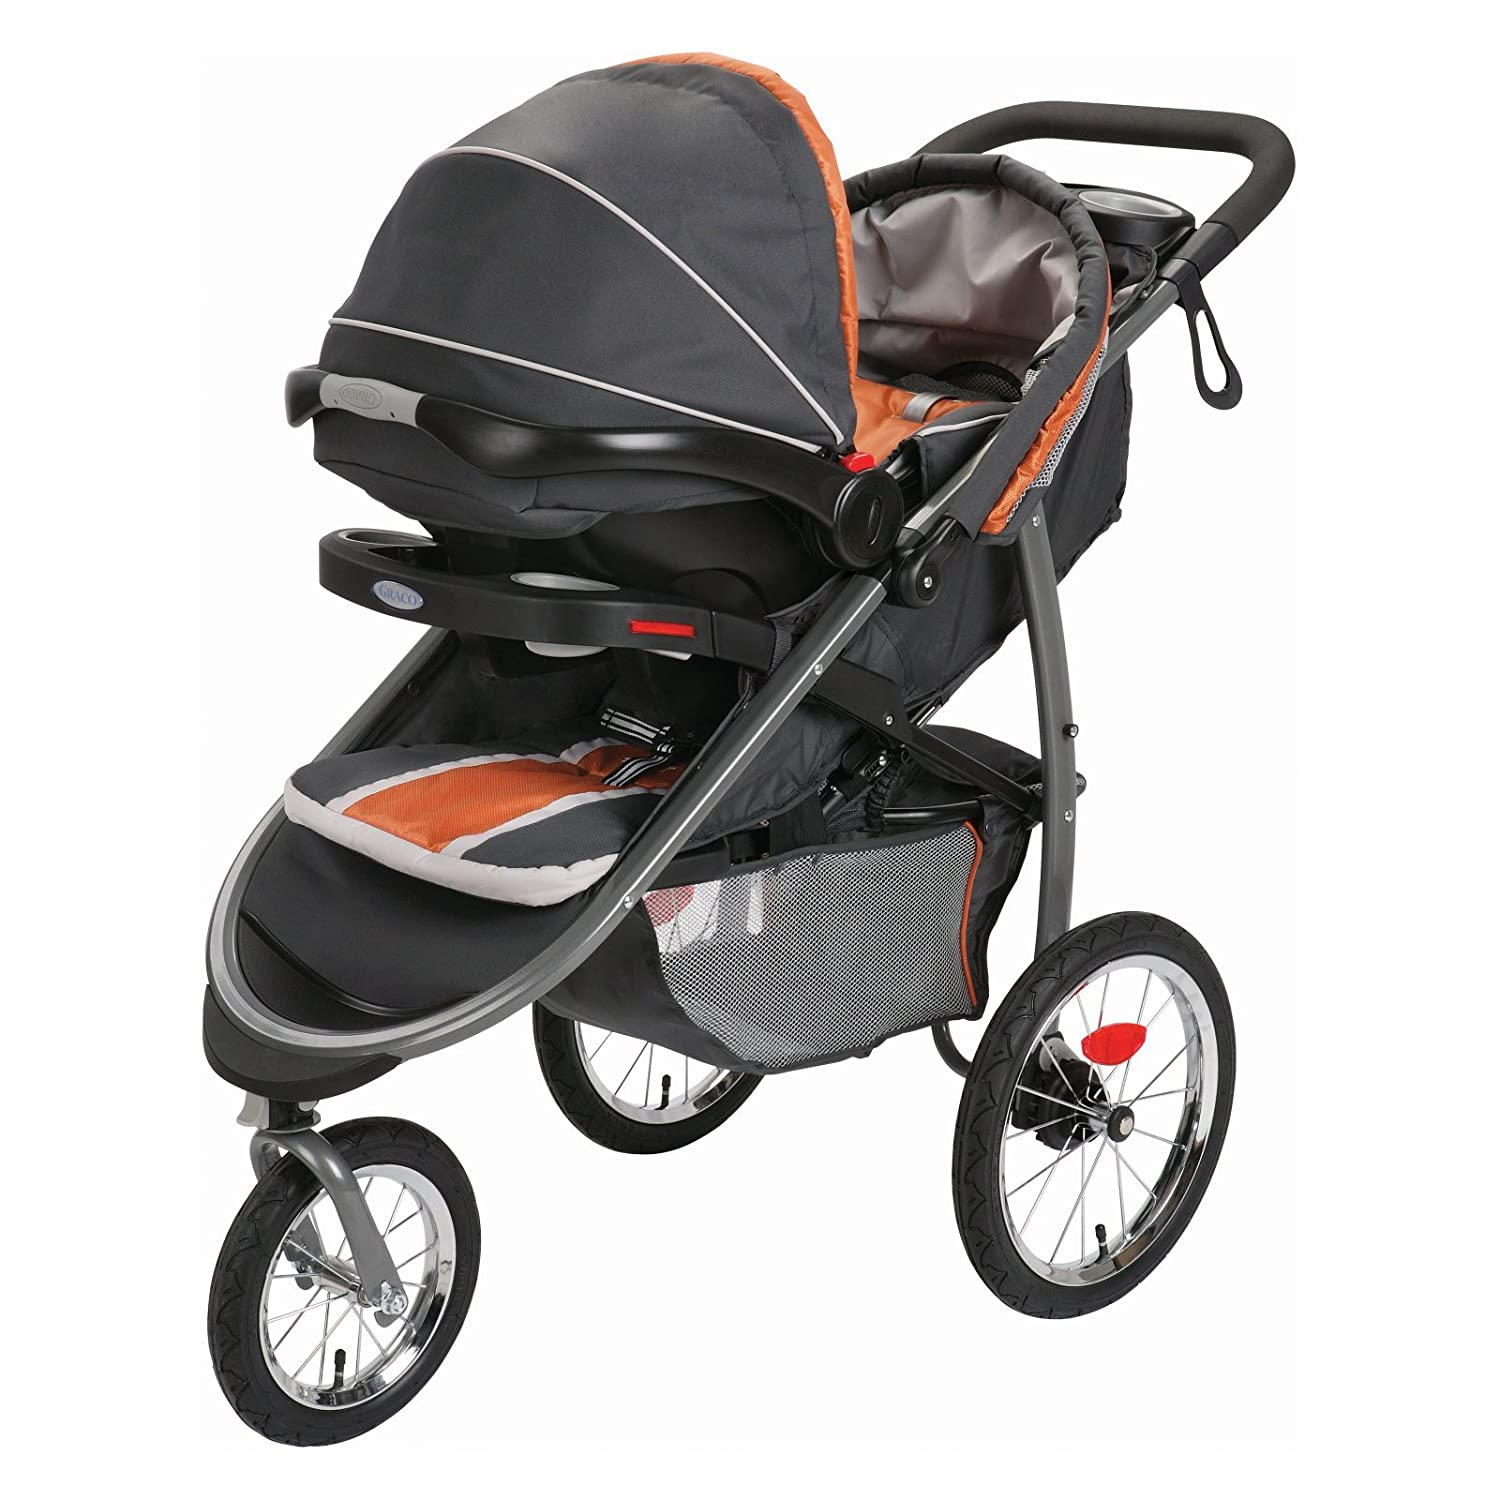 Amazon Graco Fastaction Fold Jogger Connect Stroller Gotham e Size Baby